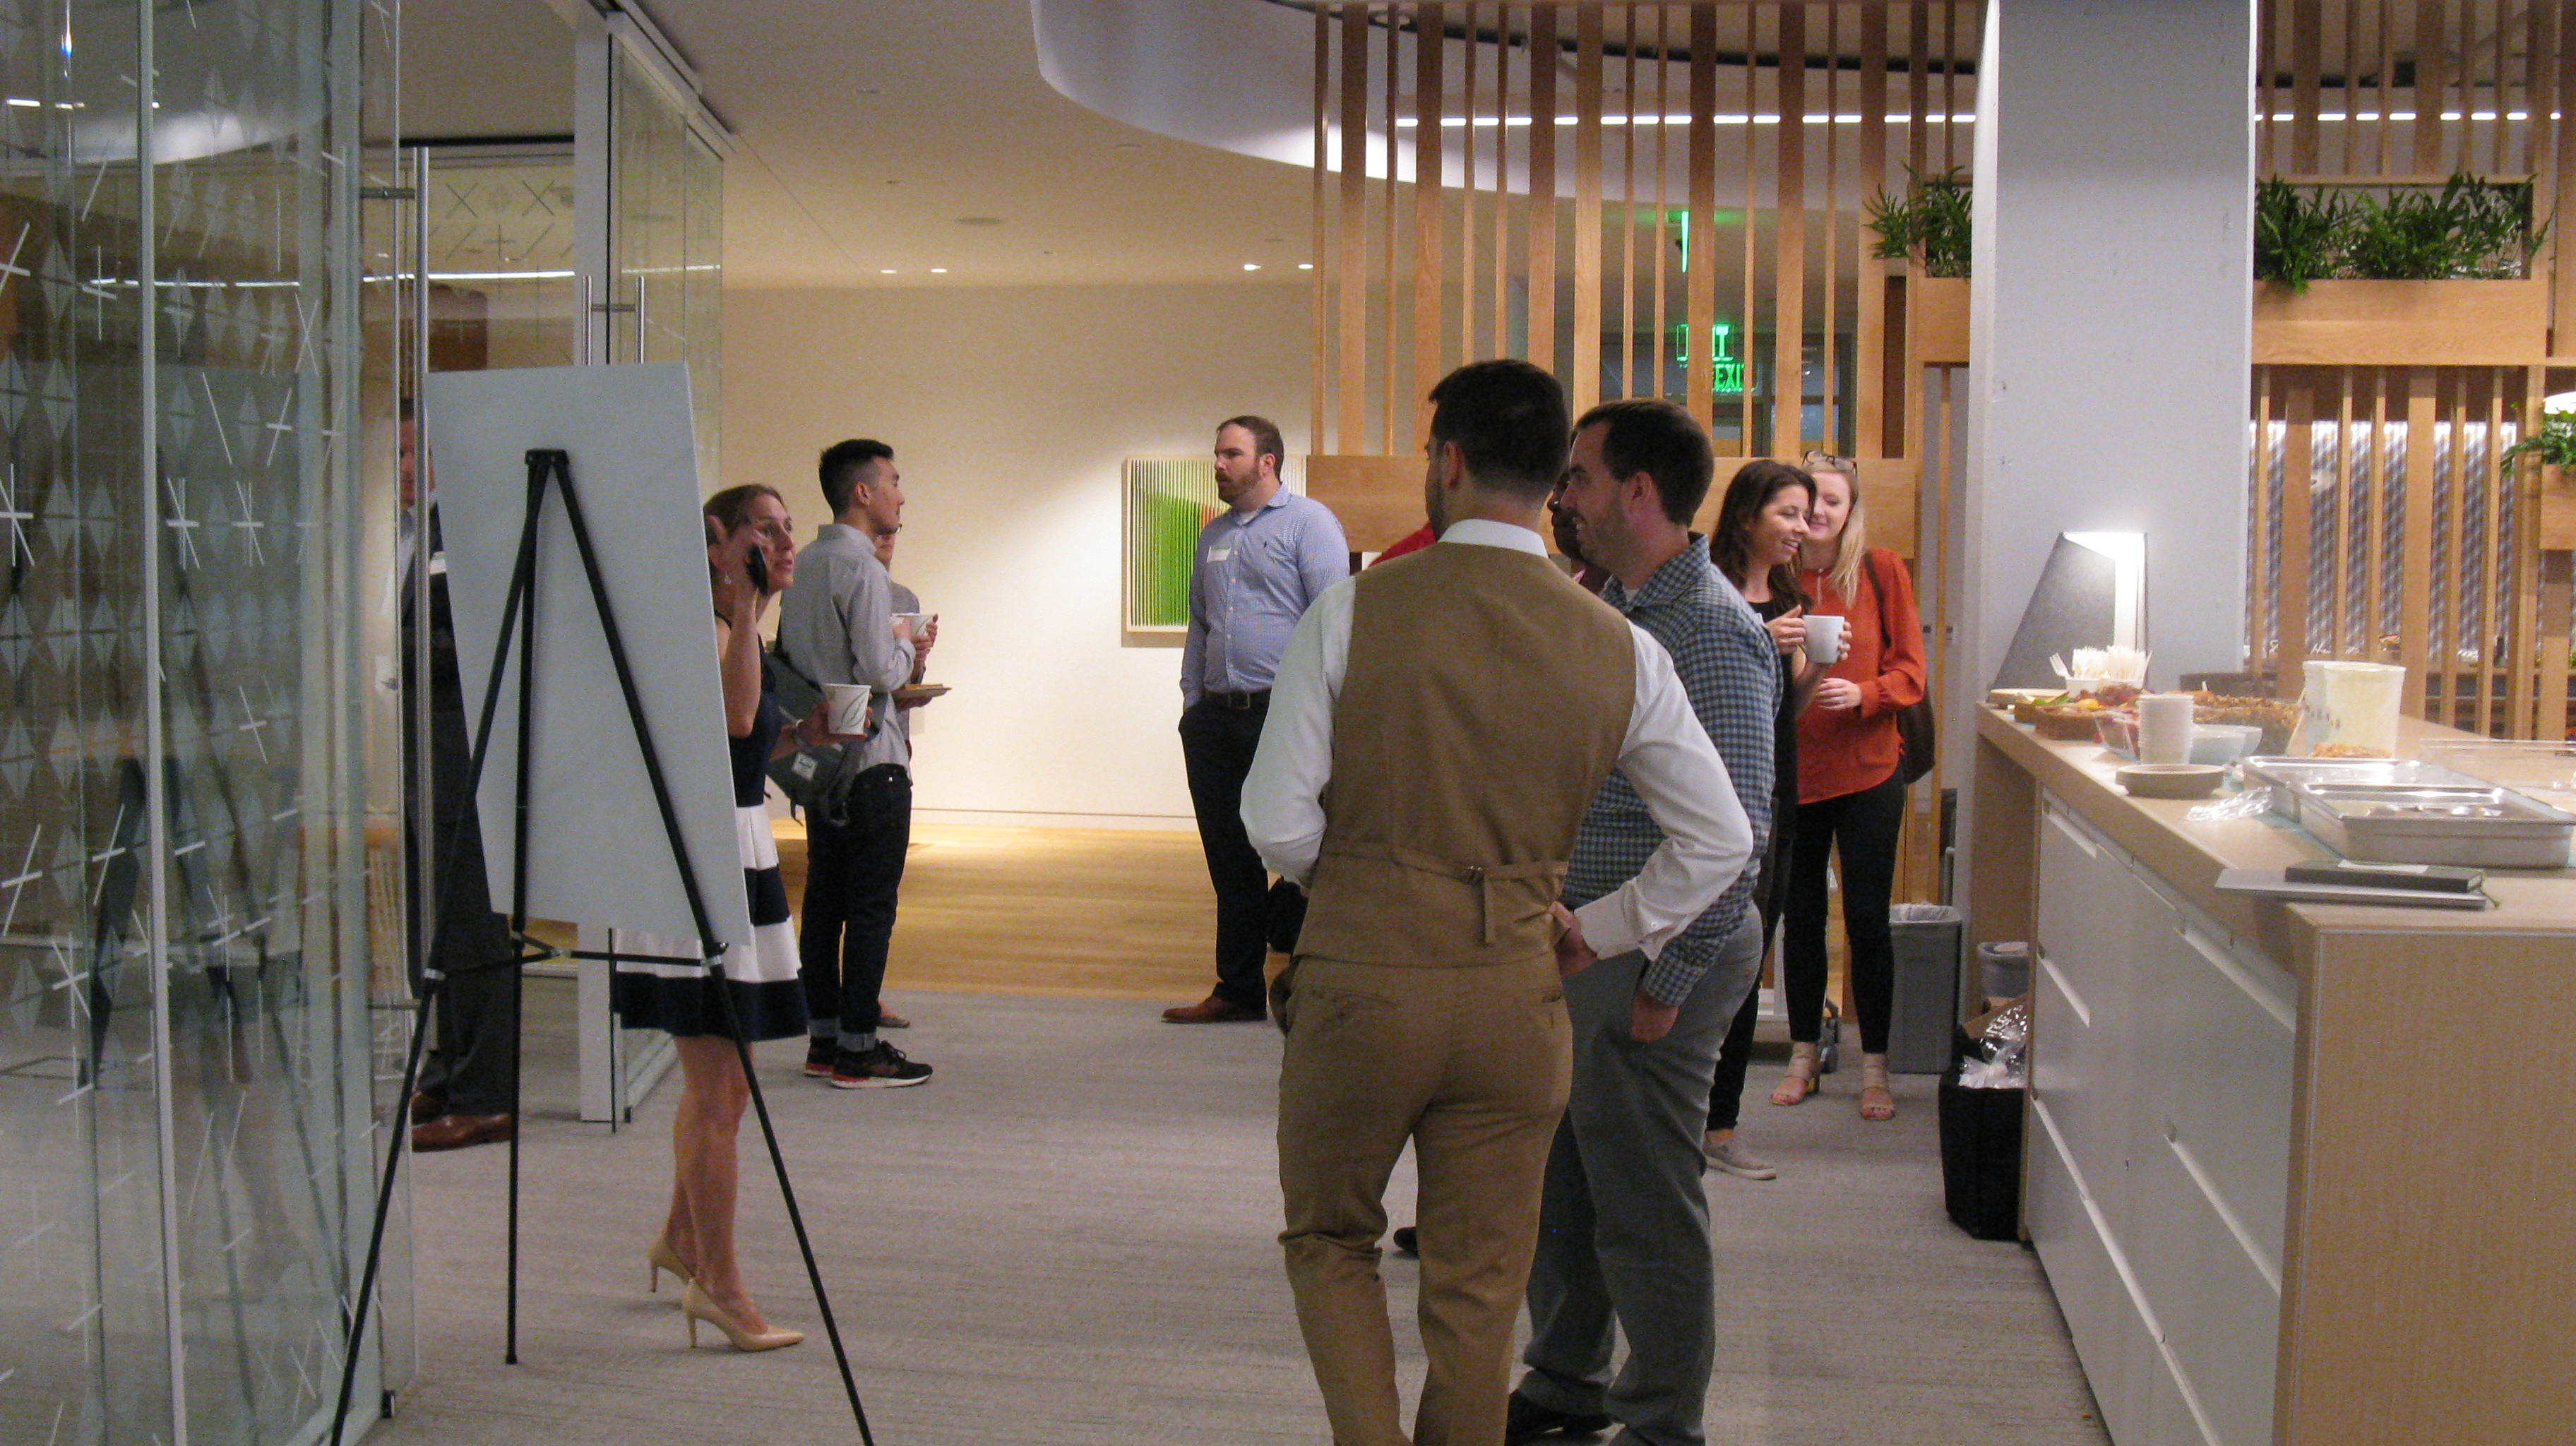 Attendees at the Haworth Showroom in D.C.